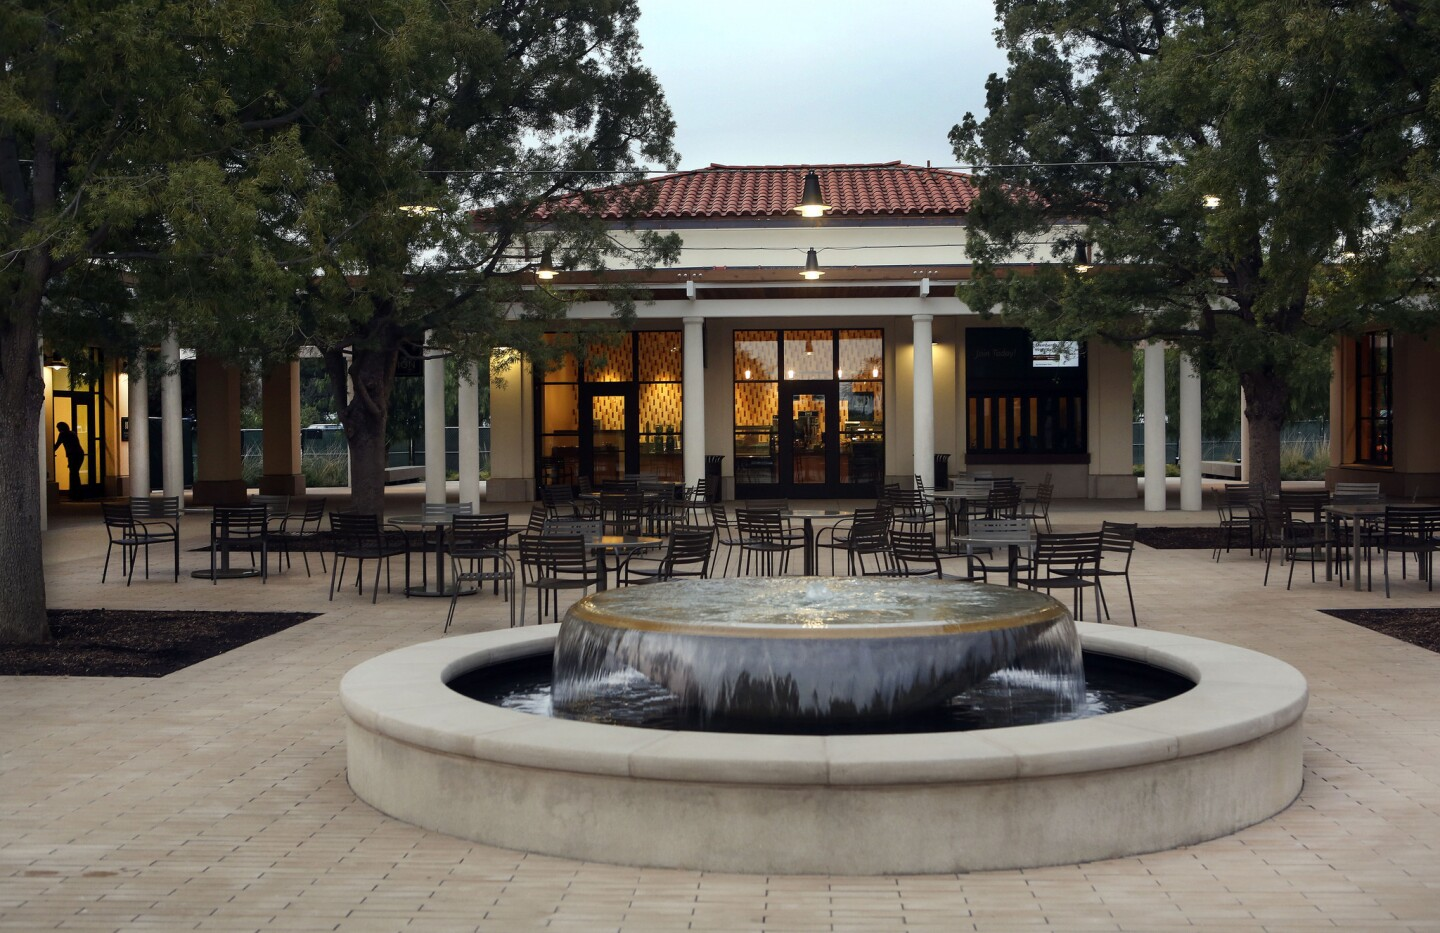 A look at the exterior of the Coffee Shop located inside the new Steven S. Koblik Education and Visitor Center at the Huntington Library in San Marino.